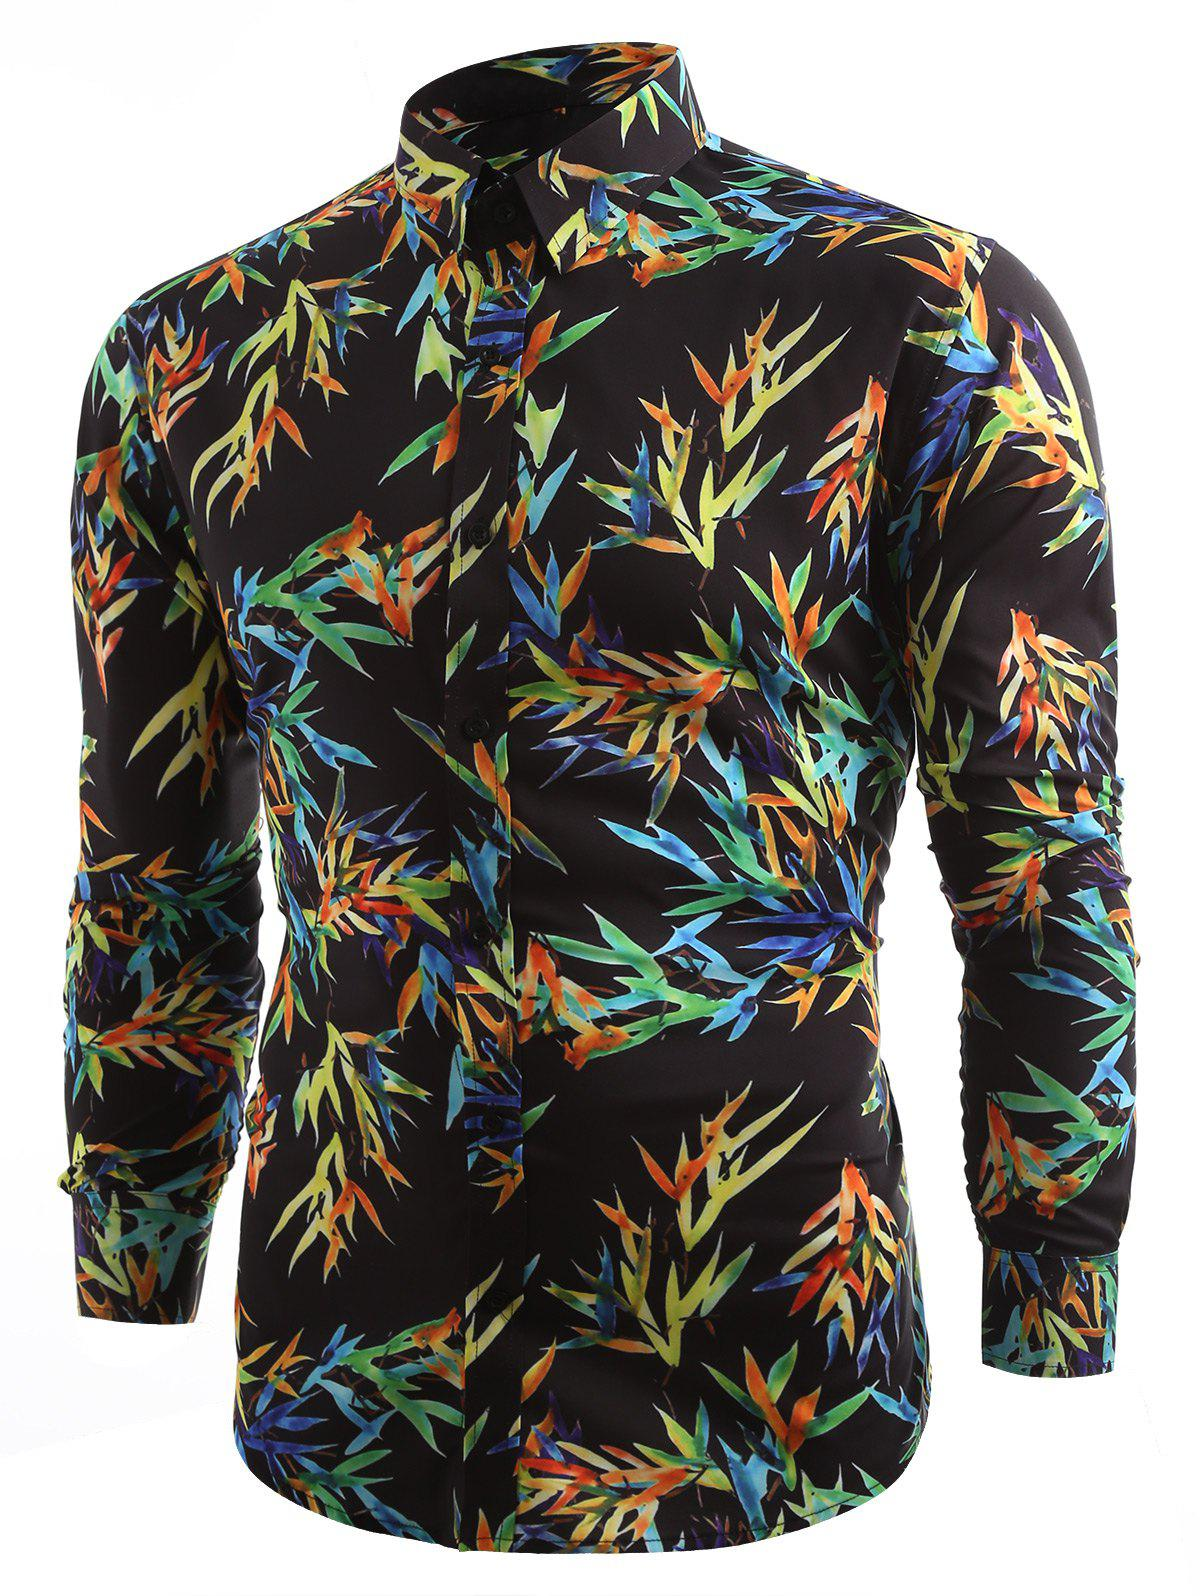 Unique Casual Allover Colorful Bamboo Leaf Printed Shirt